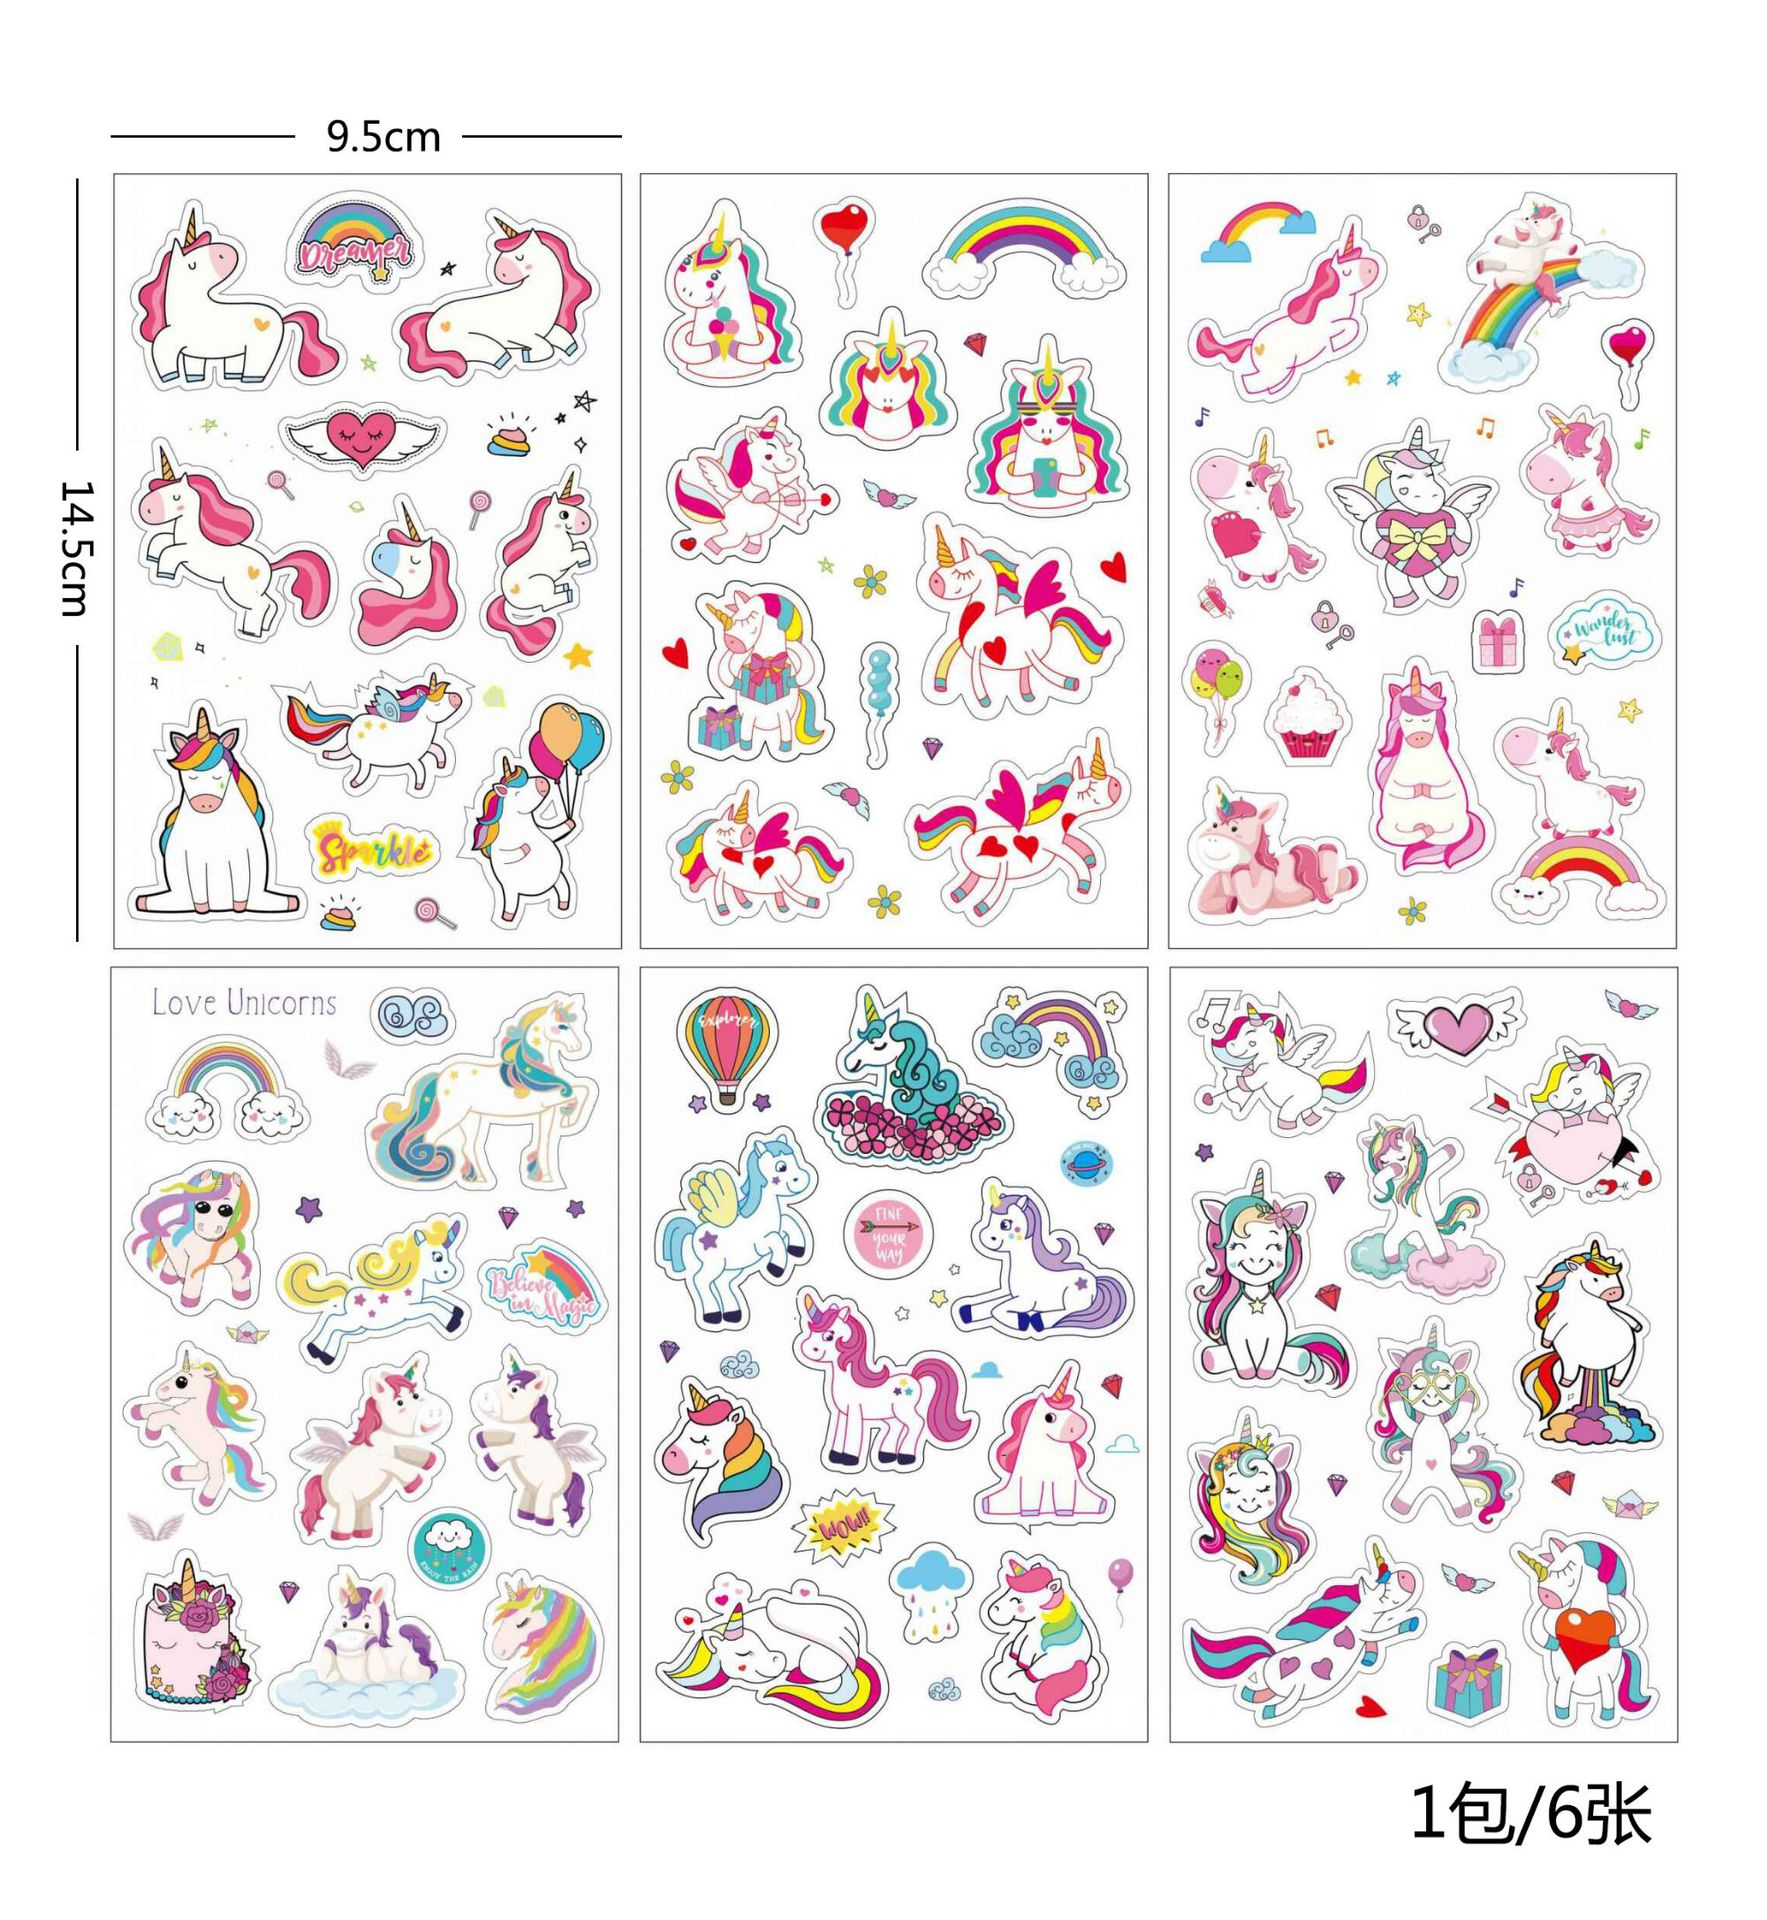 Office & School Supplies Enthusiastic 6 Pcs/pack Cartoon Unicorn Bullet Journal Decorative Stationery Stickers Scrapbooking Diy Diary Album Stick Lable Elegant And Graceful